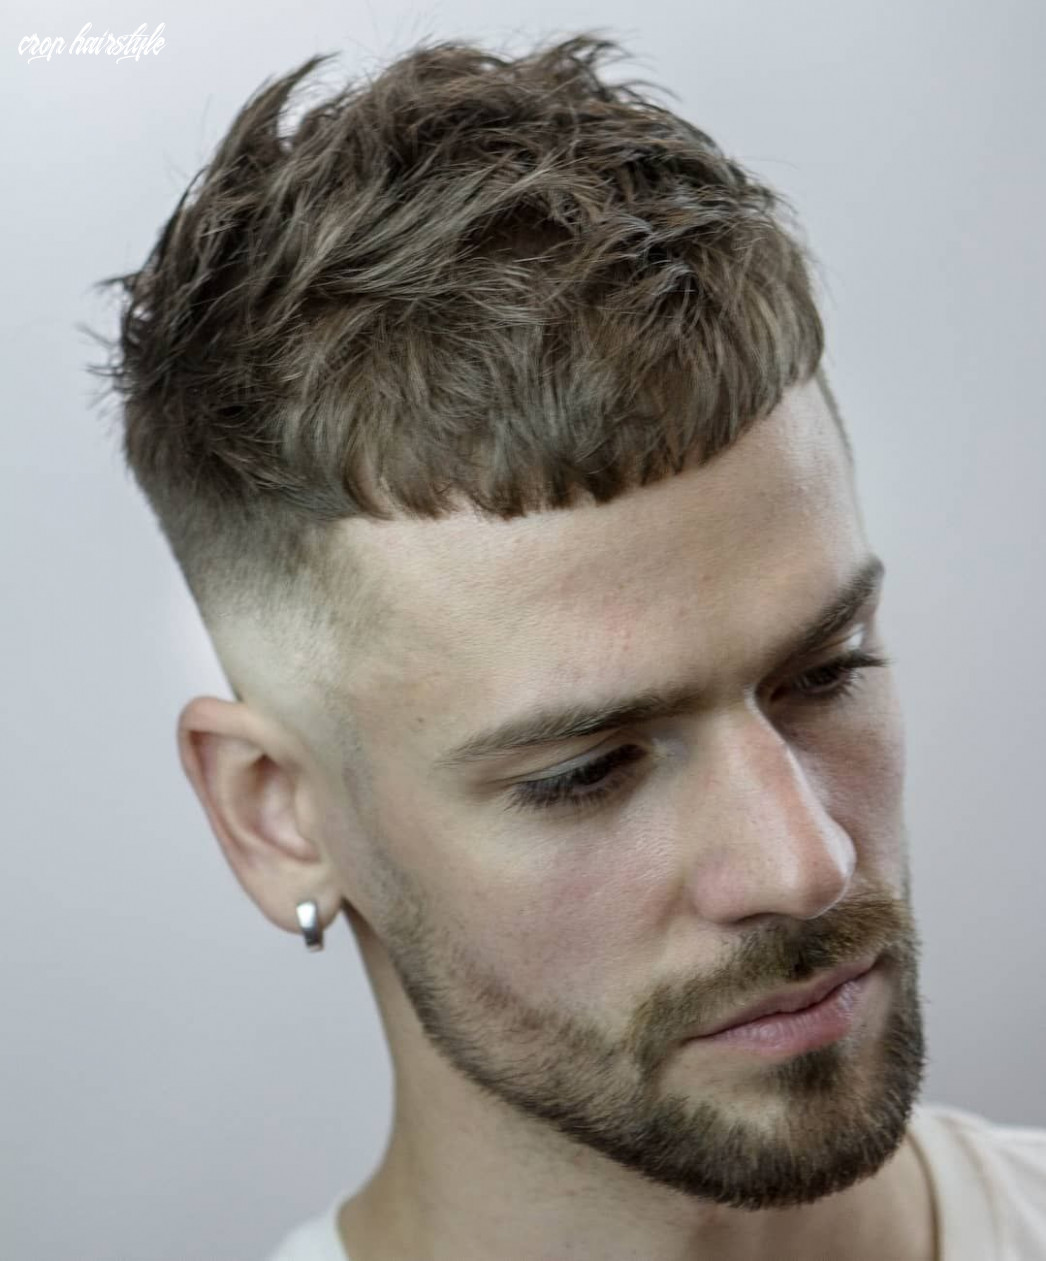 French crop fade 10 best mens hairstyle variations | crop